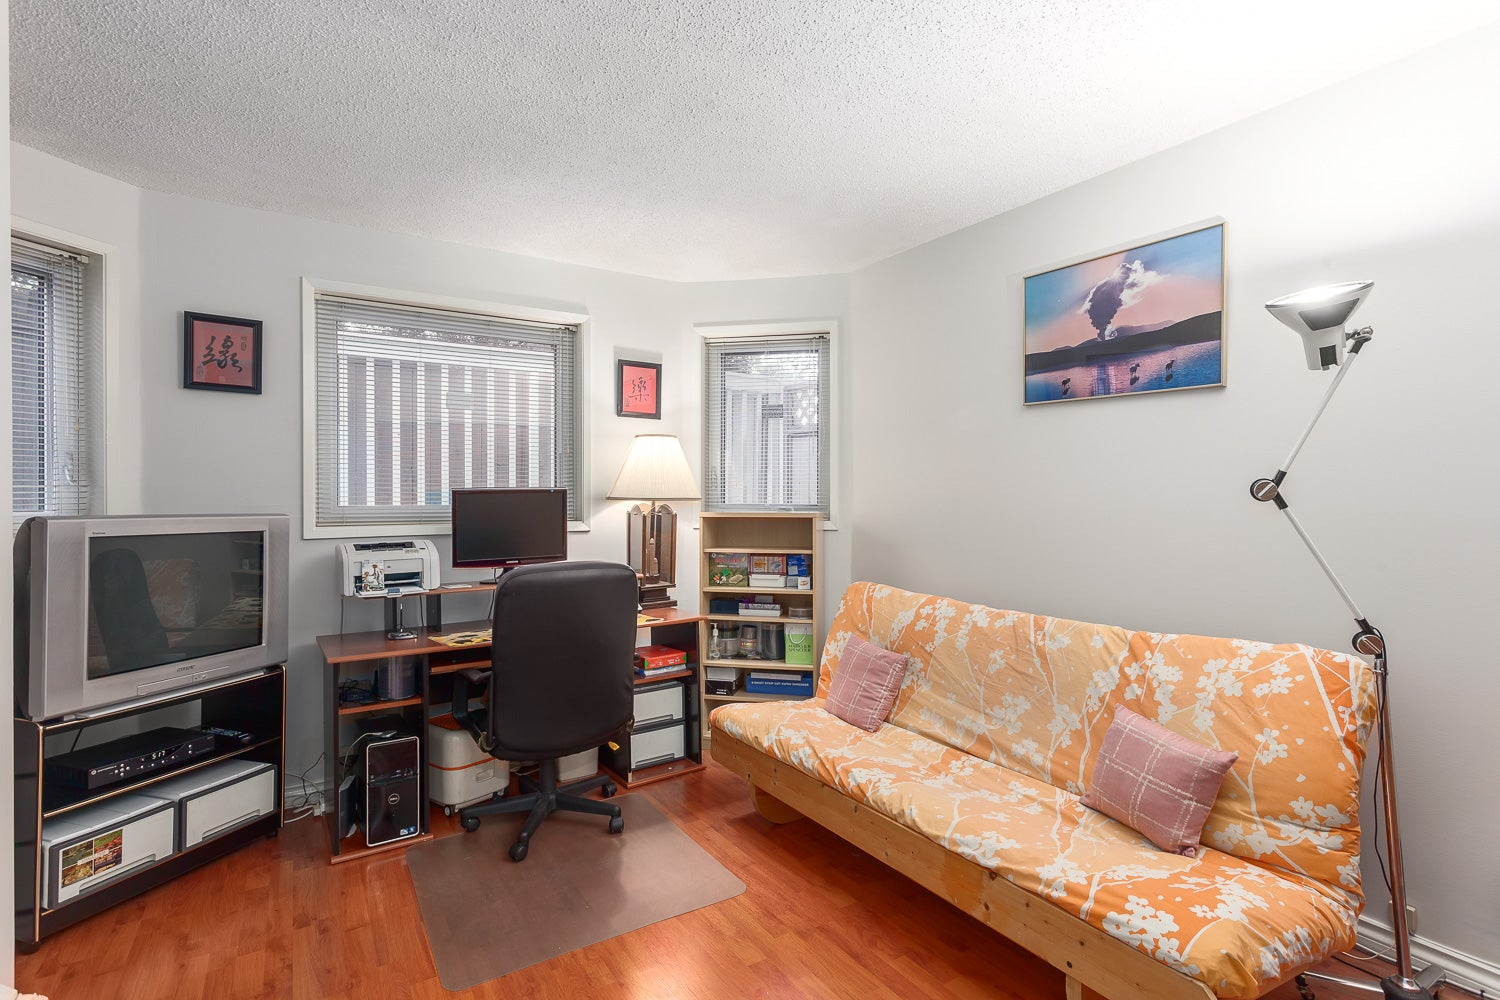 101 4696 W 10TH AVENUE - Point Grey Apartment/Condo for sale, 2 Bedrooms (R2203906) #13